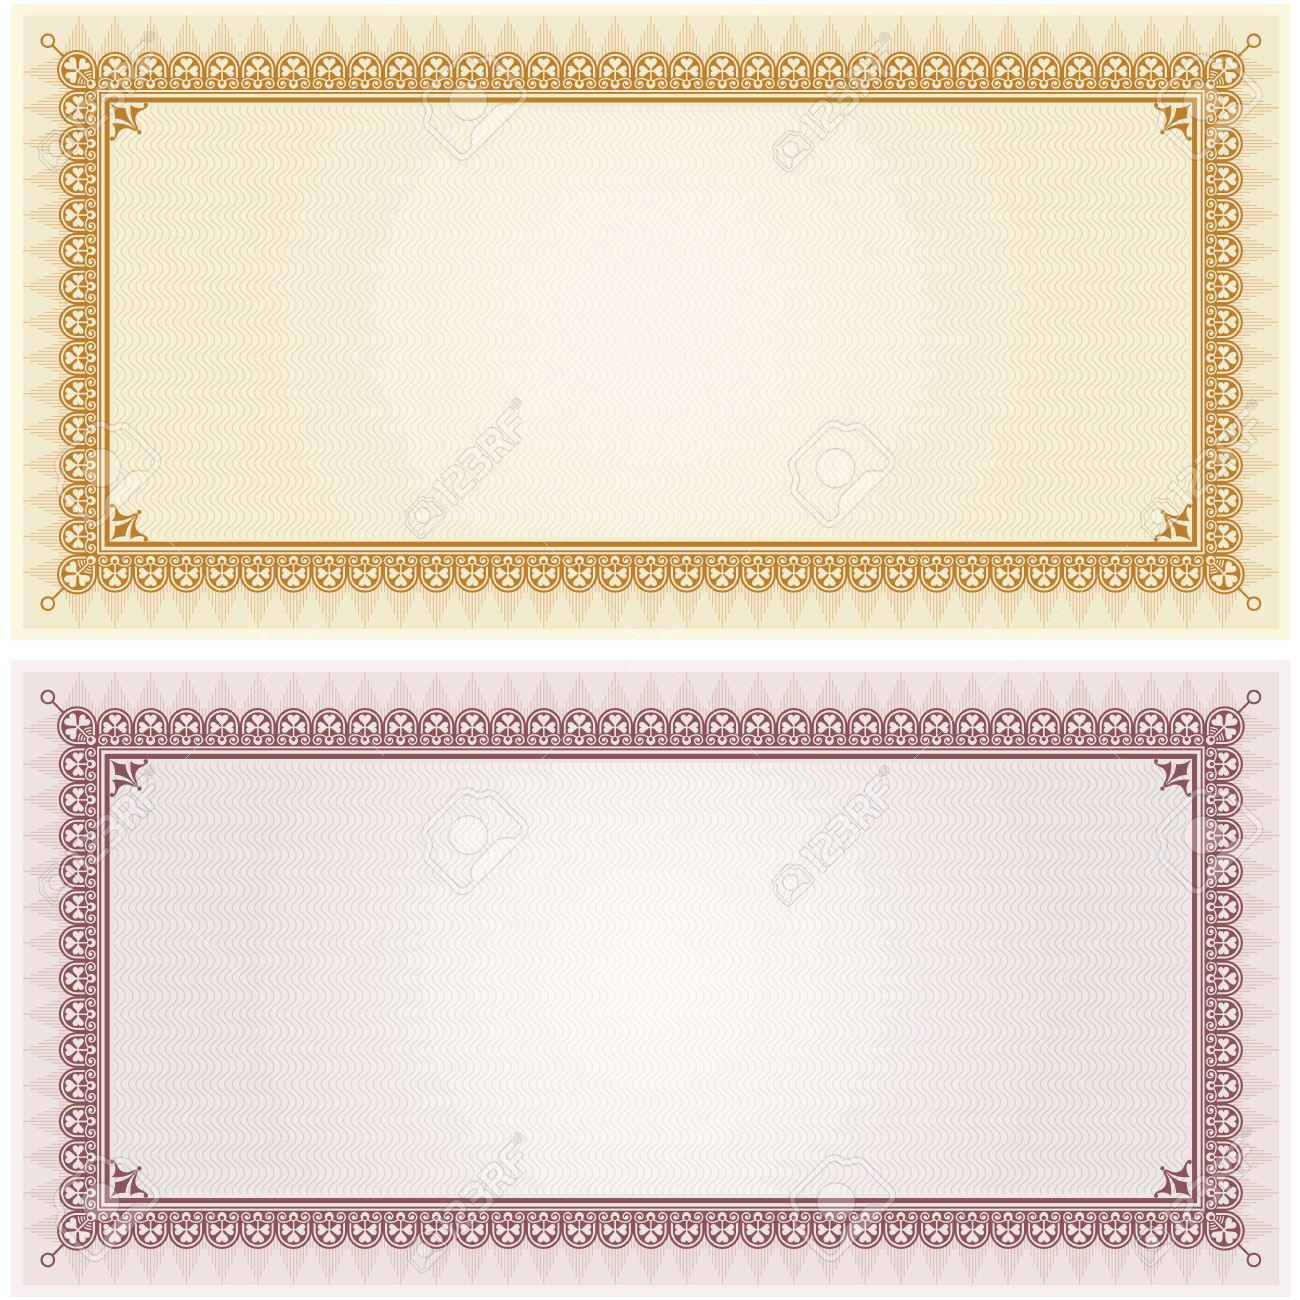 word certificate borders